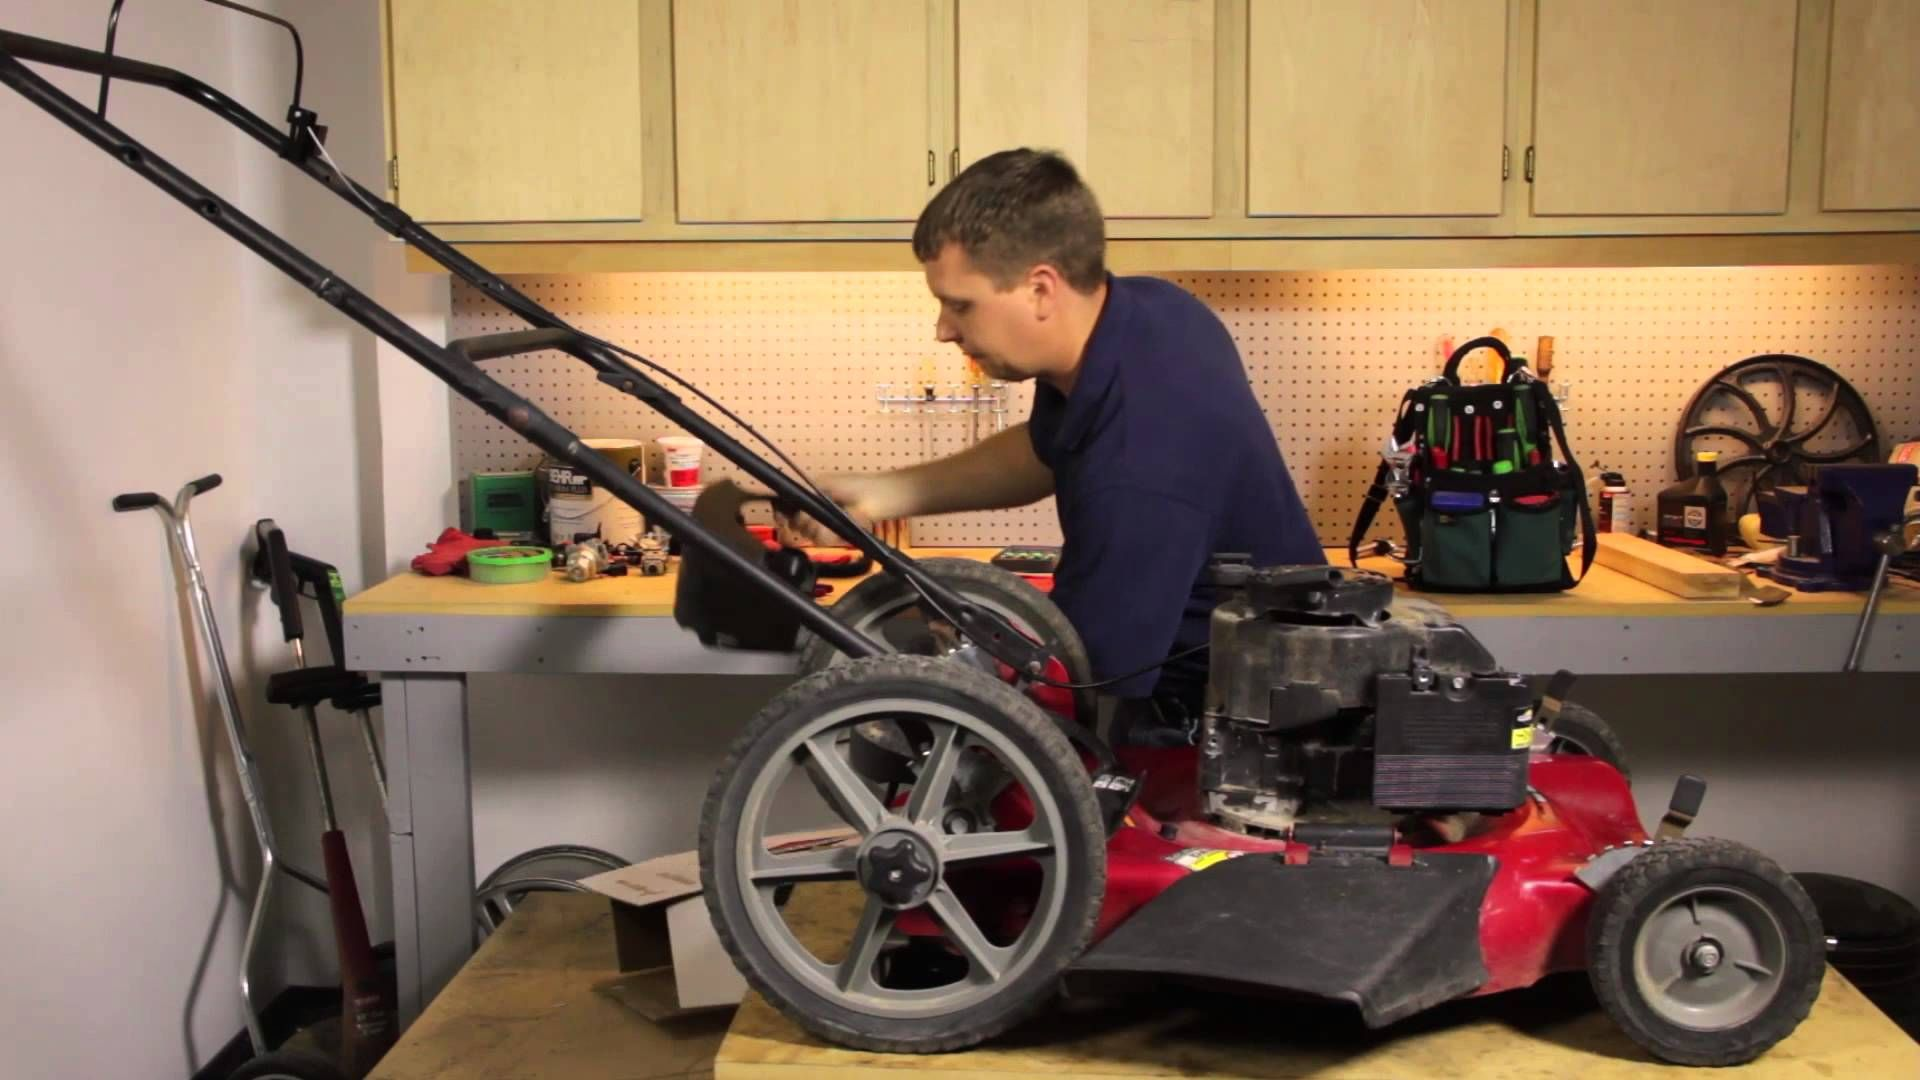 How To Fix A Leaking Lawnmower Gas Tank Lawnmower Maintenance Repair Lawn Mower Maintenance Lawn Mower Gas Tanks